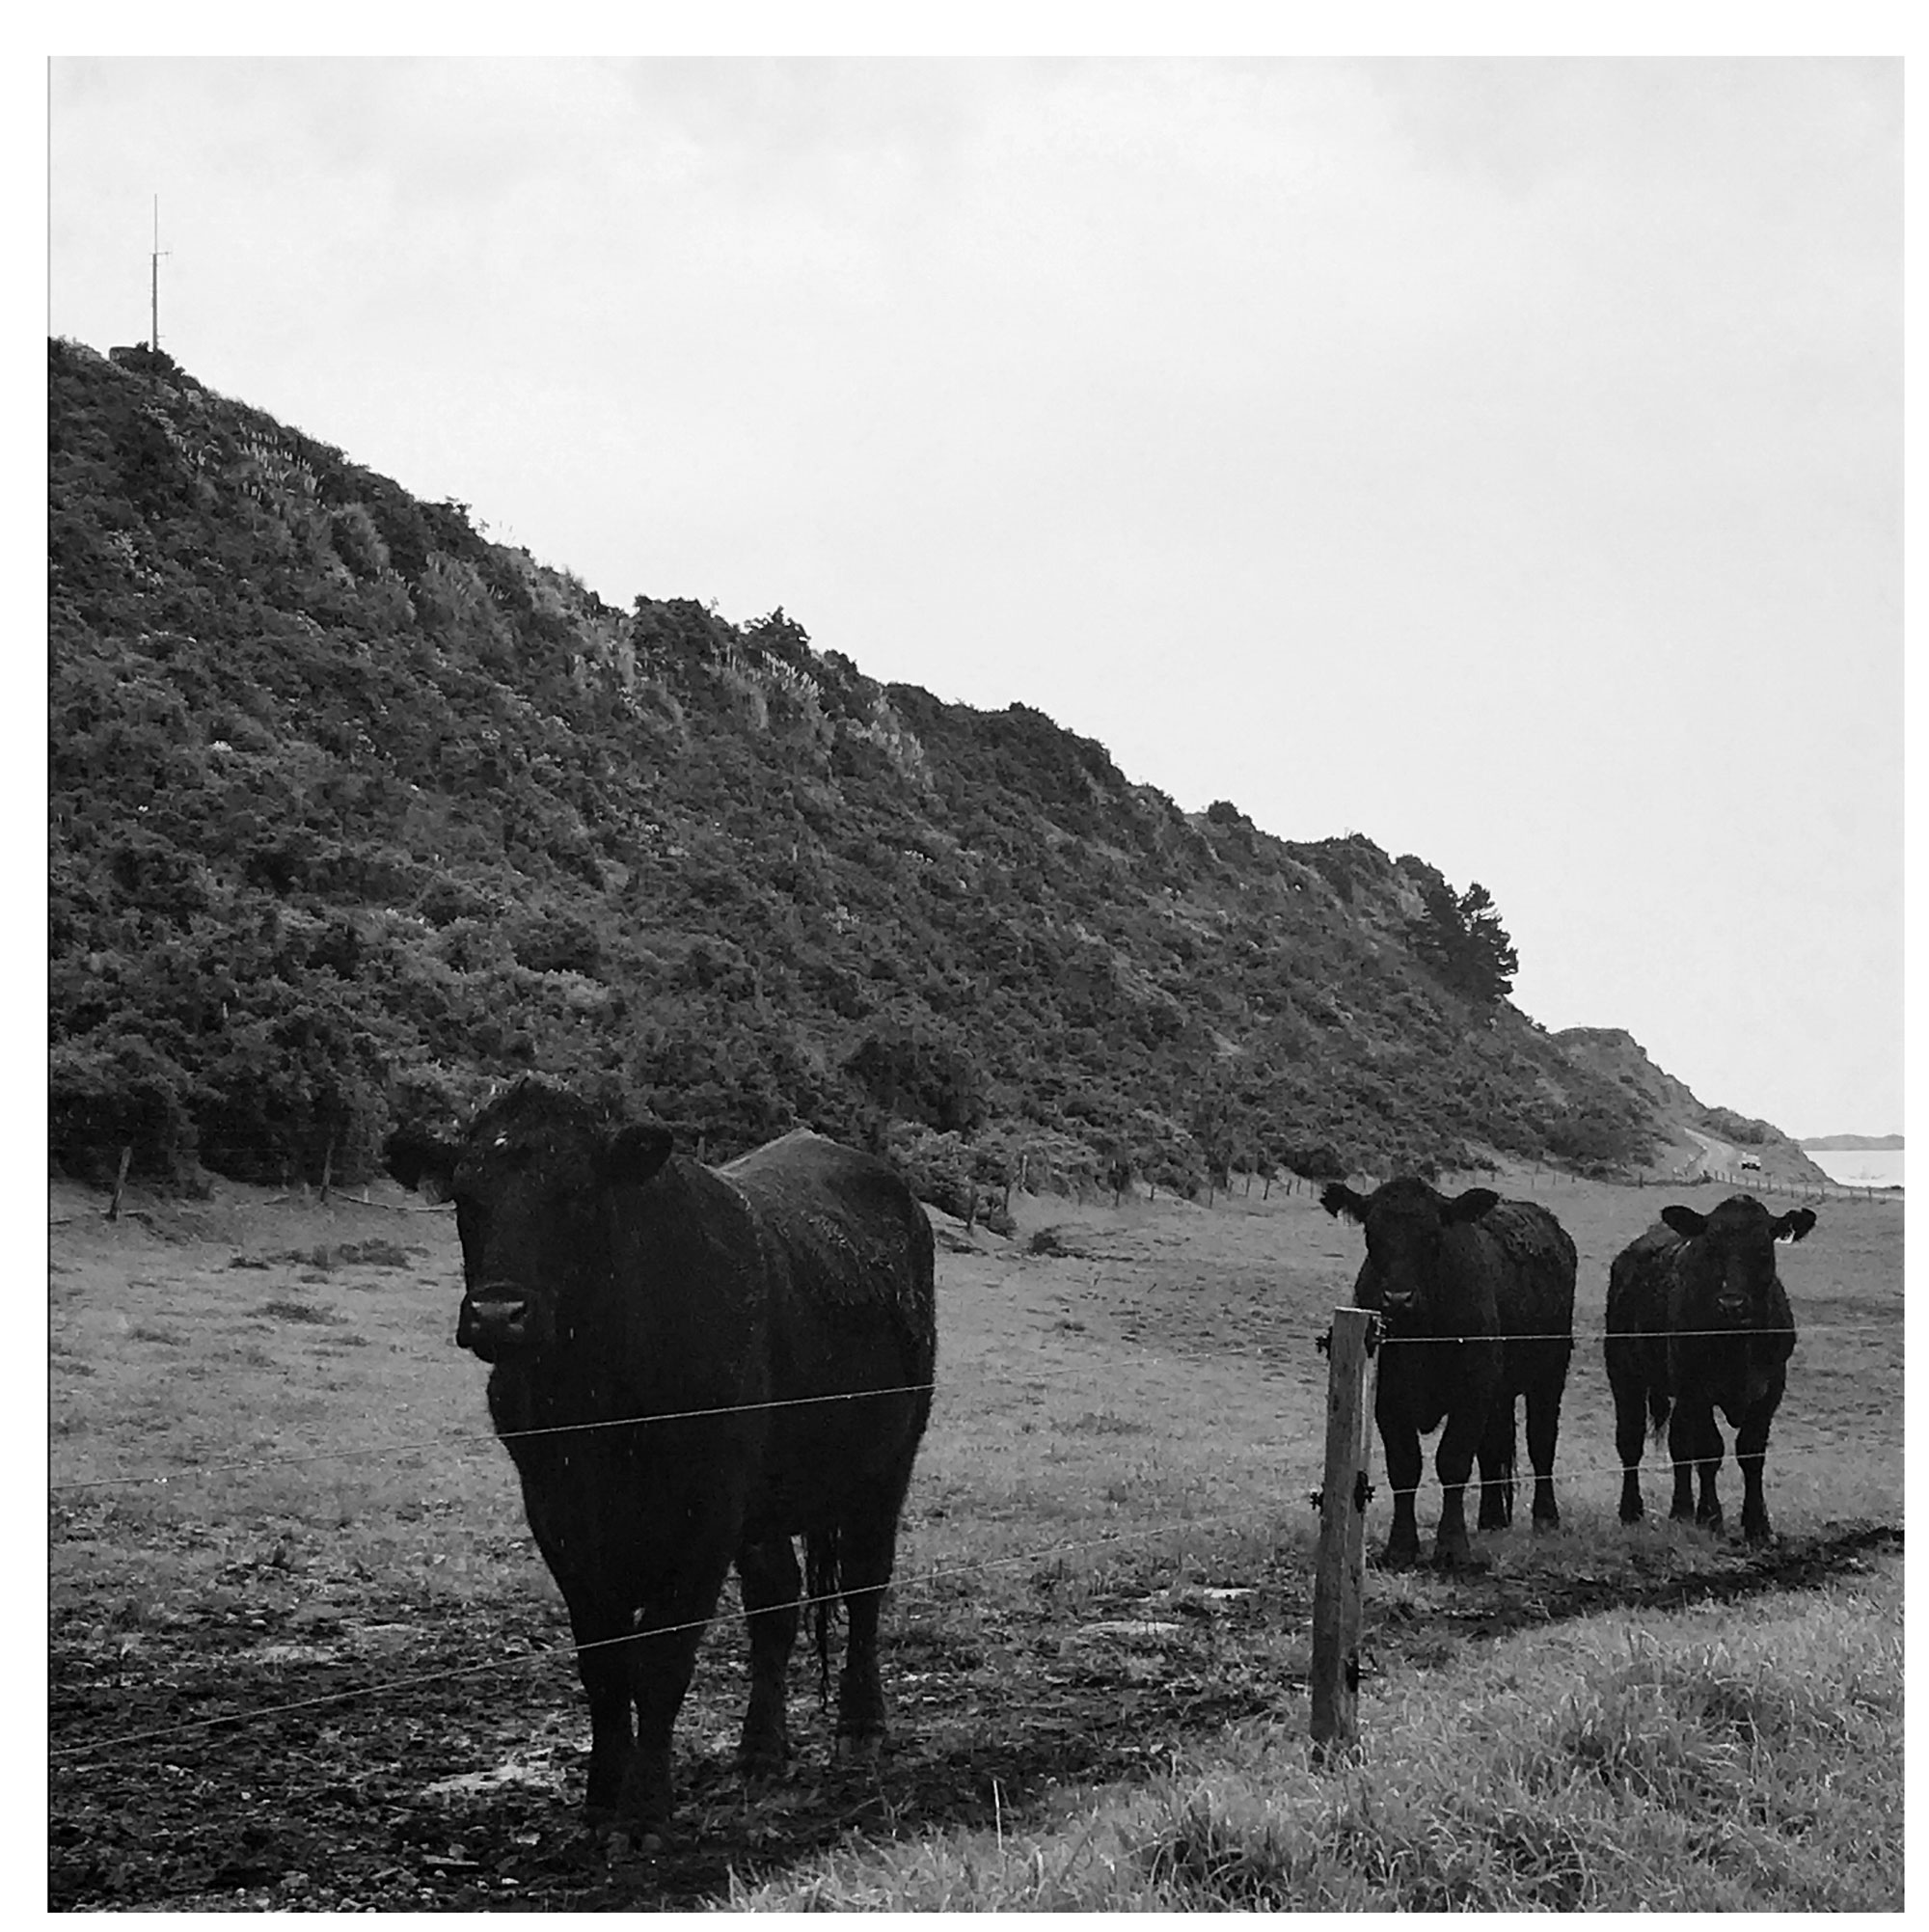 Cows in the rain matching my mood, 7 October 2017